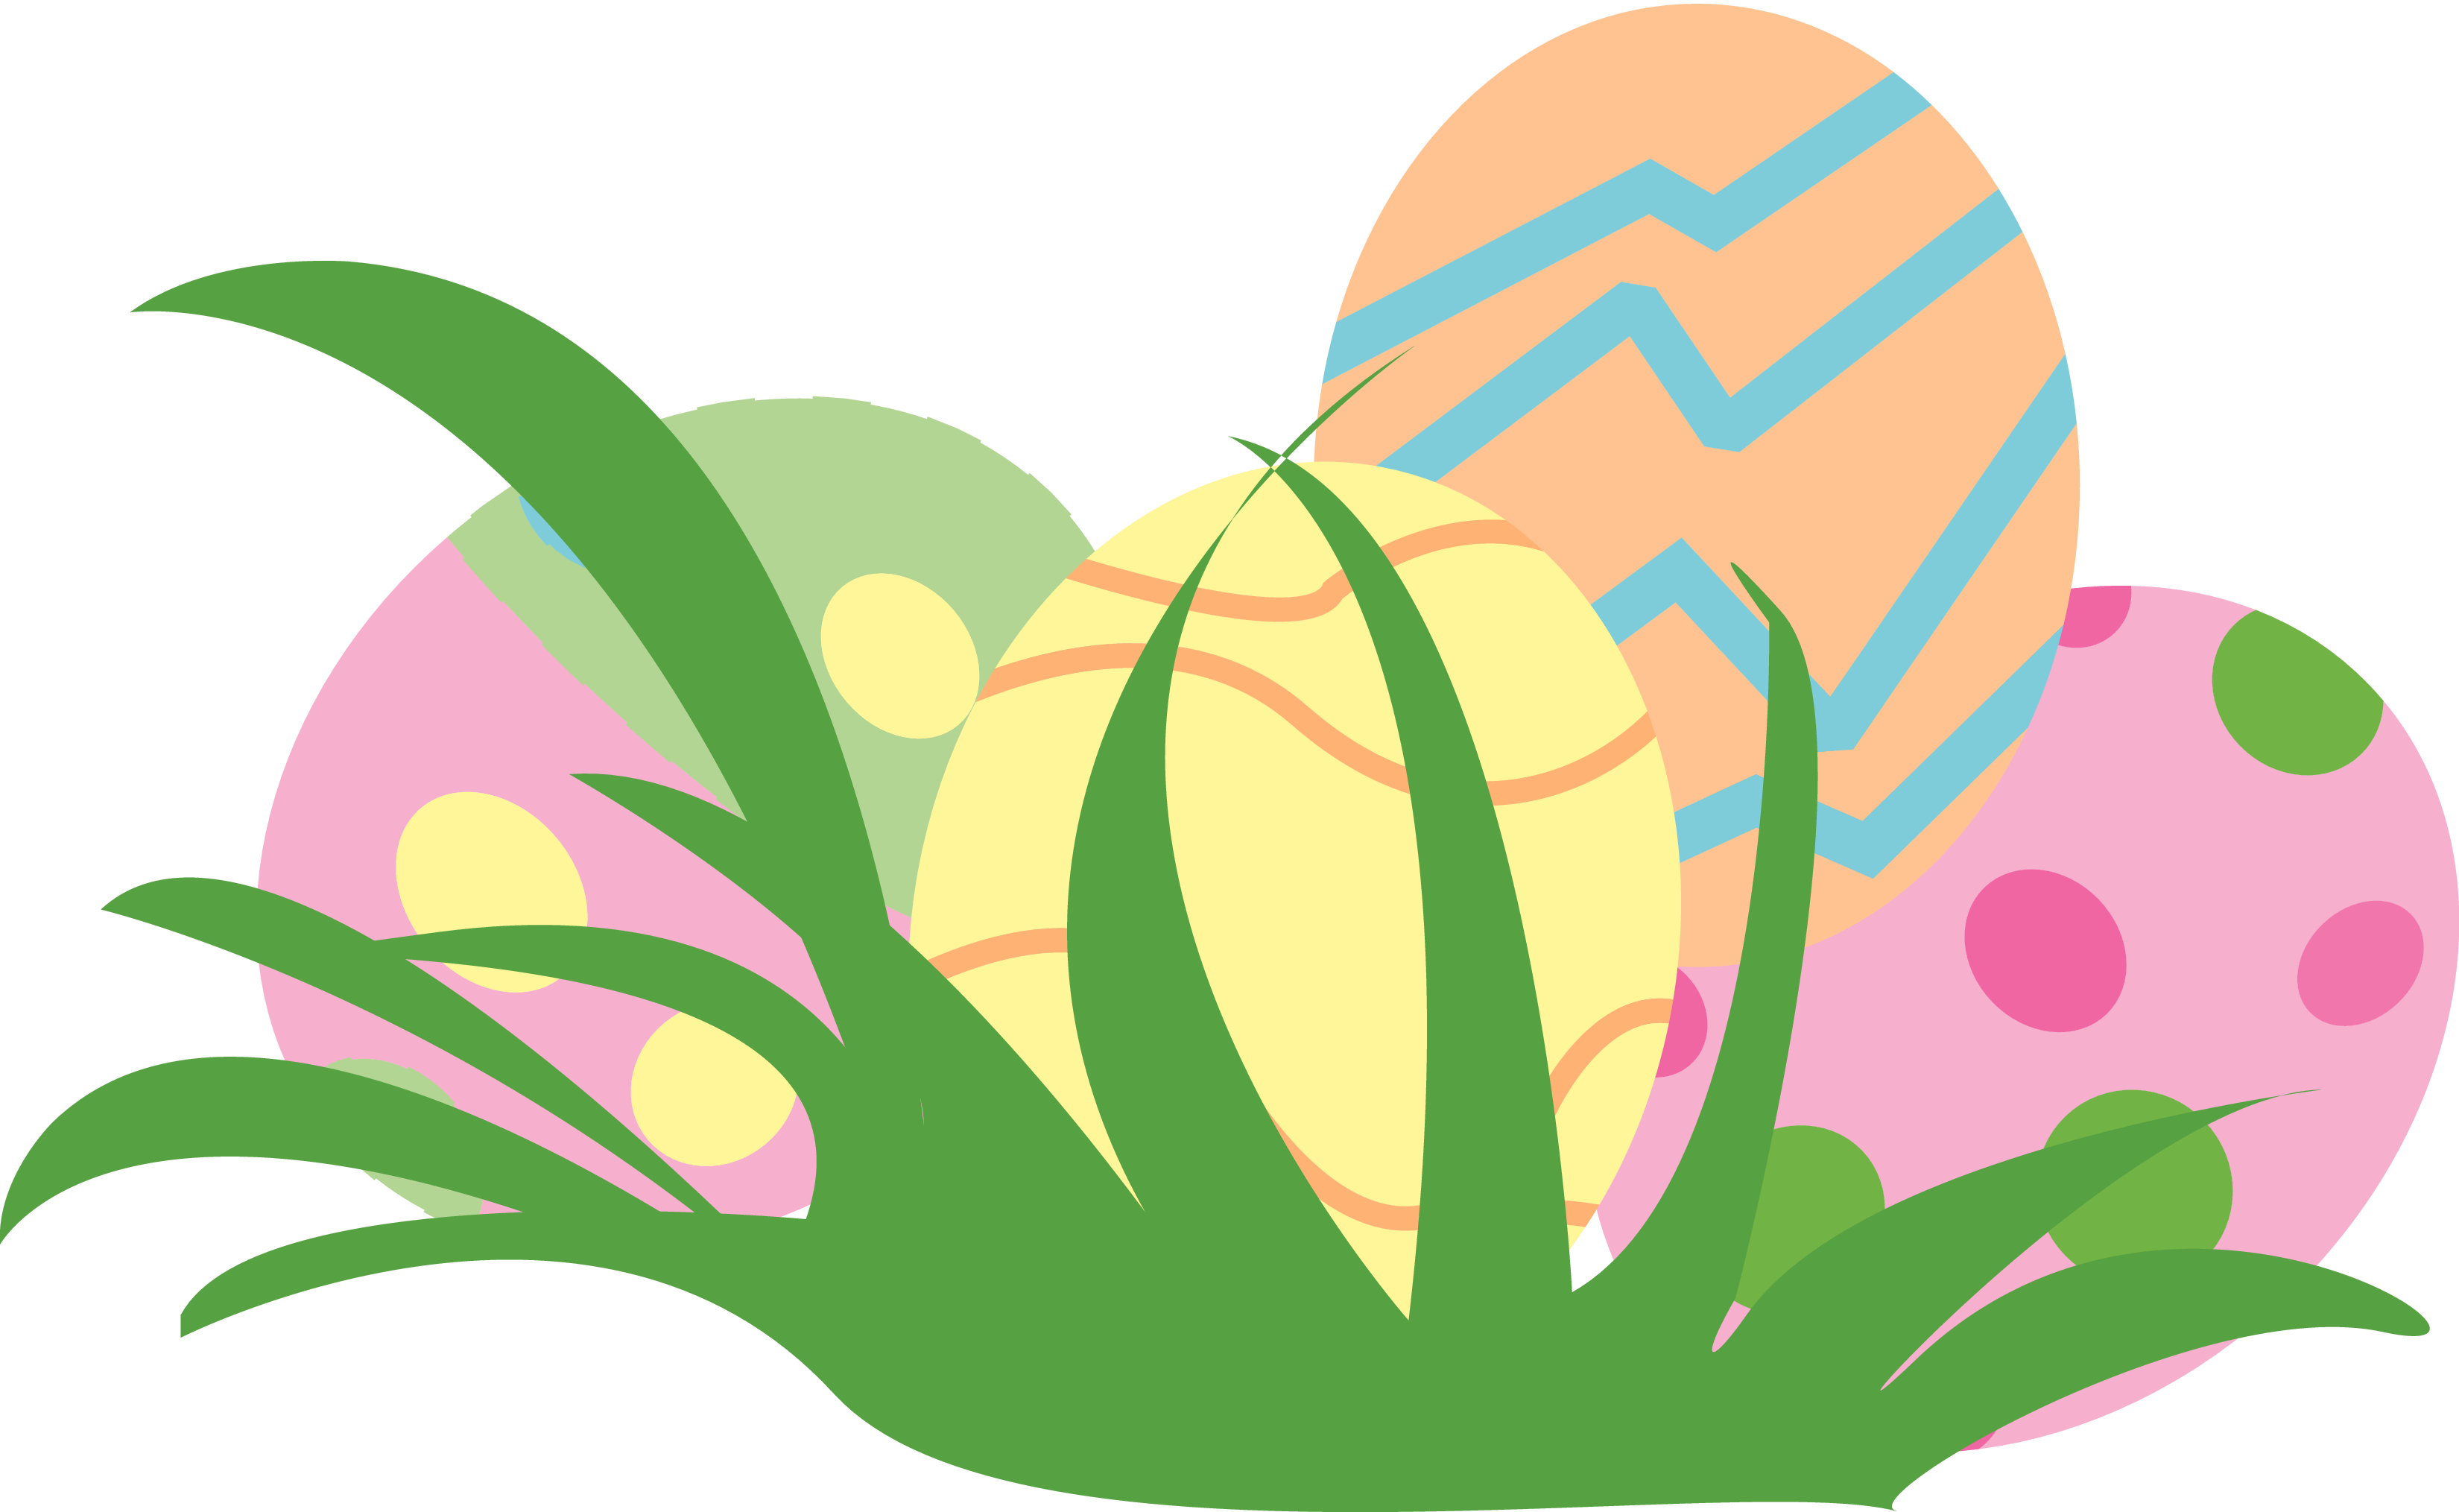 Egg hunt clipart jpg royalty free stock Pastel Easter Egg Clipart | Clipart Panda - Free Clipart Images ... jpg royalty free stock